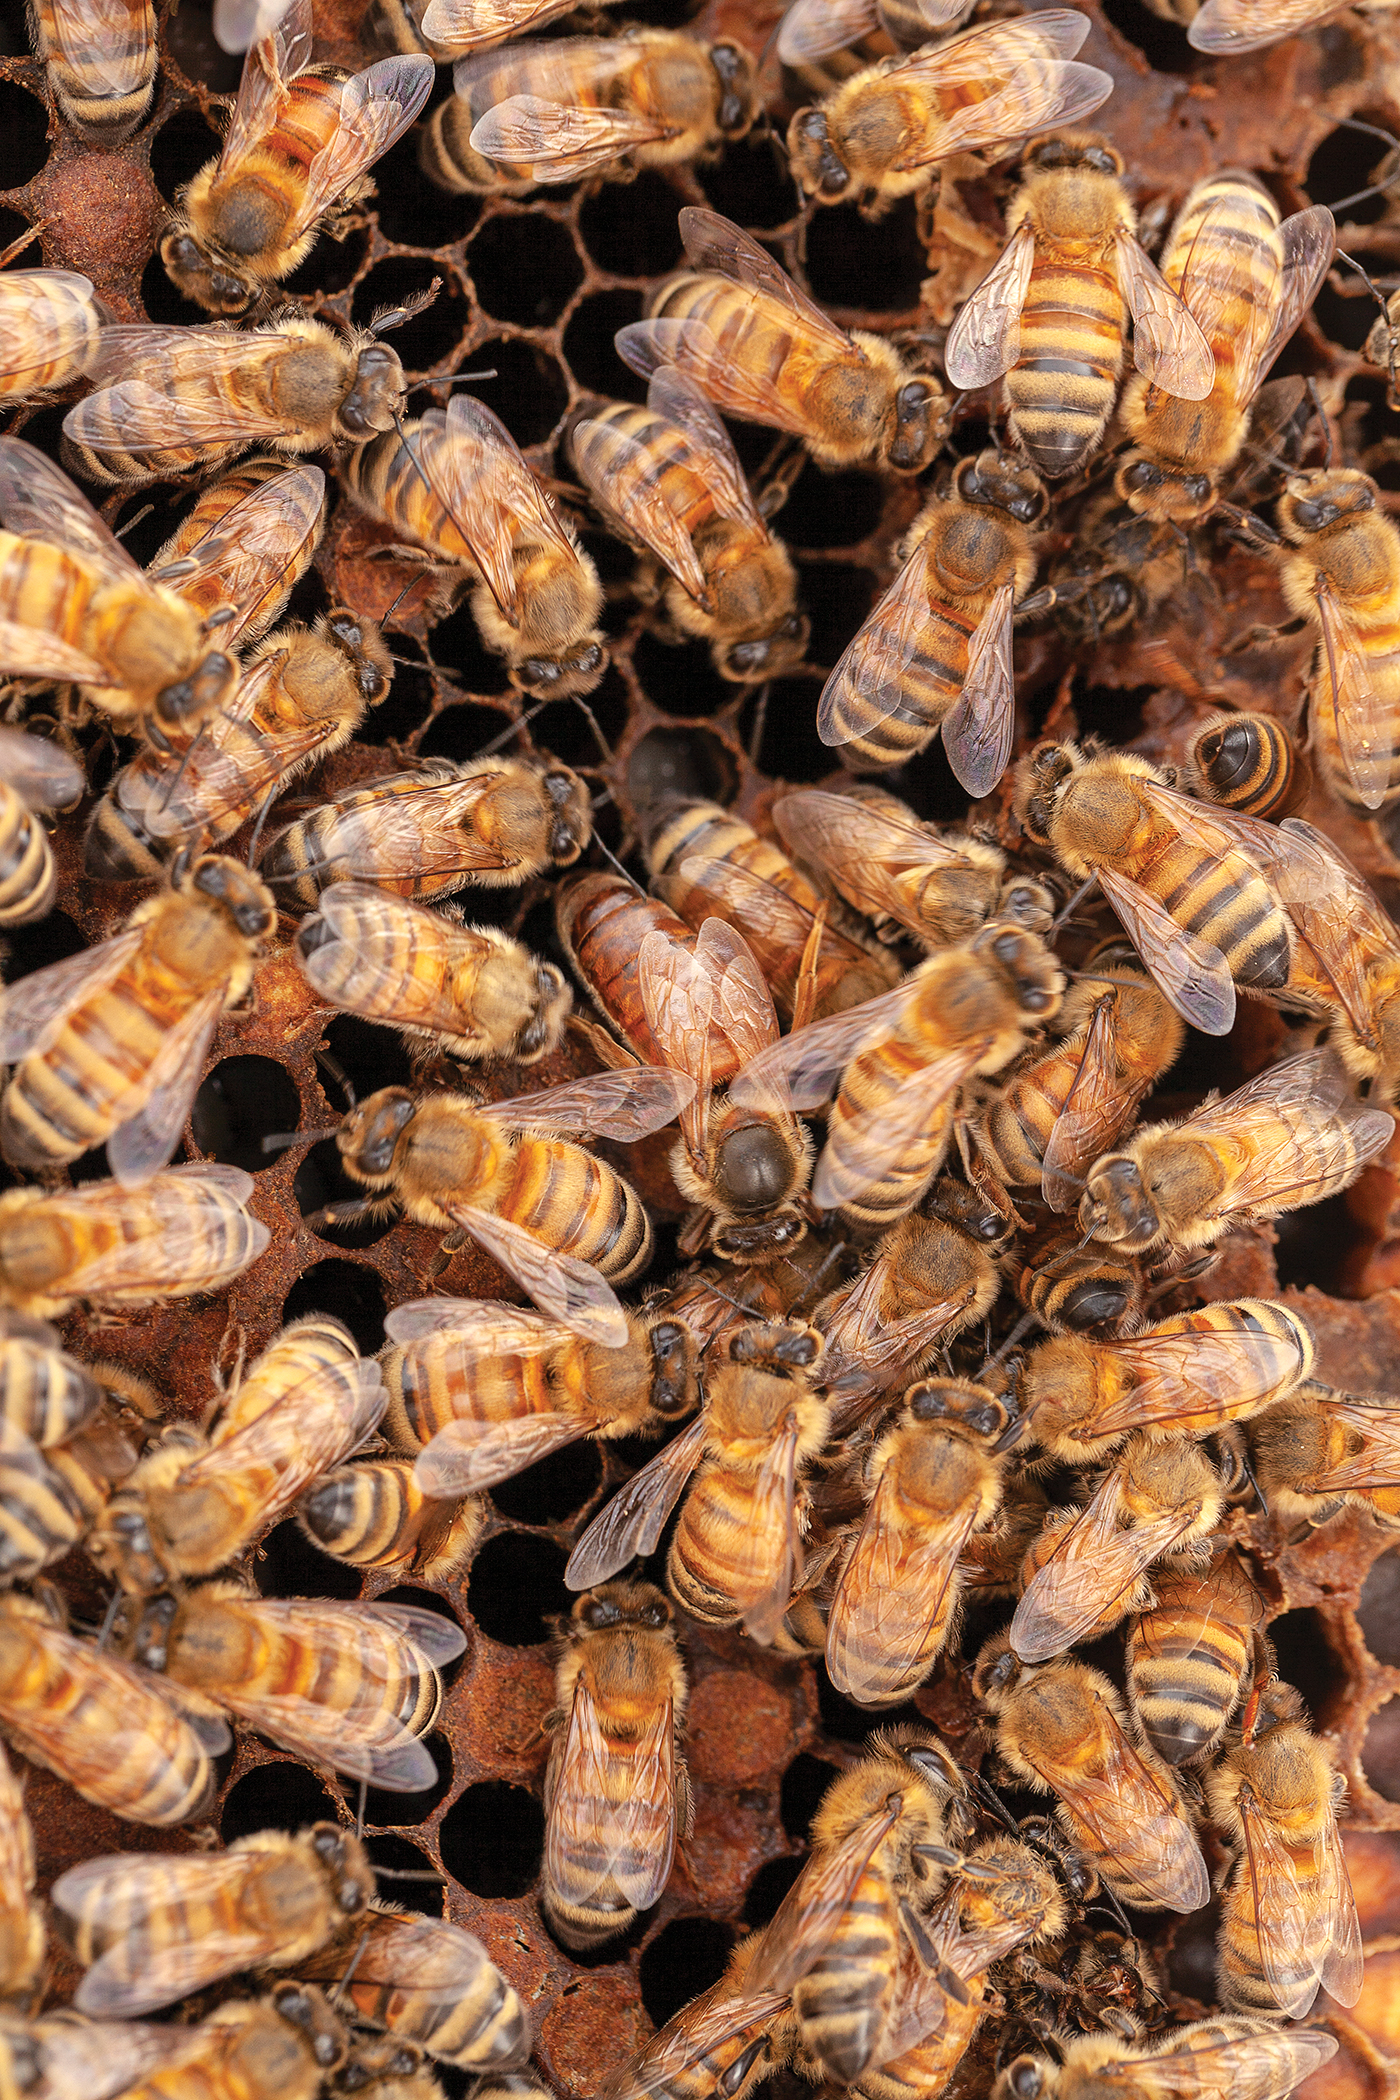 Close-up of bees and queen bee on beehive honeycomb.